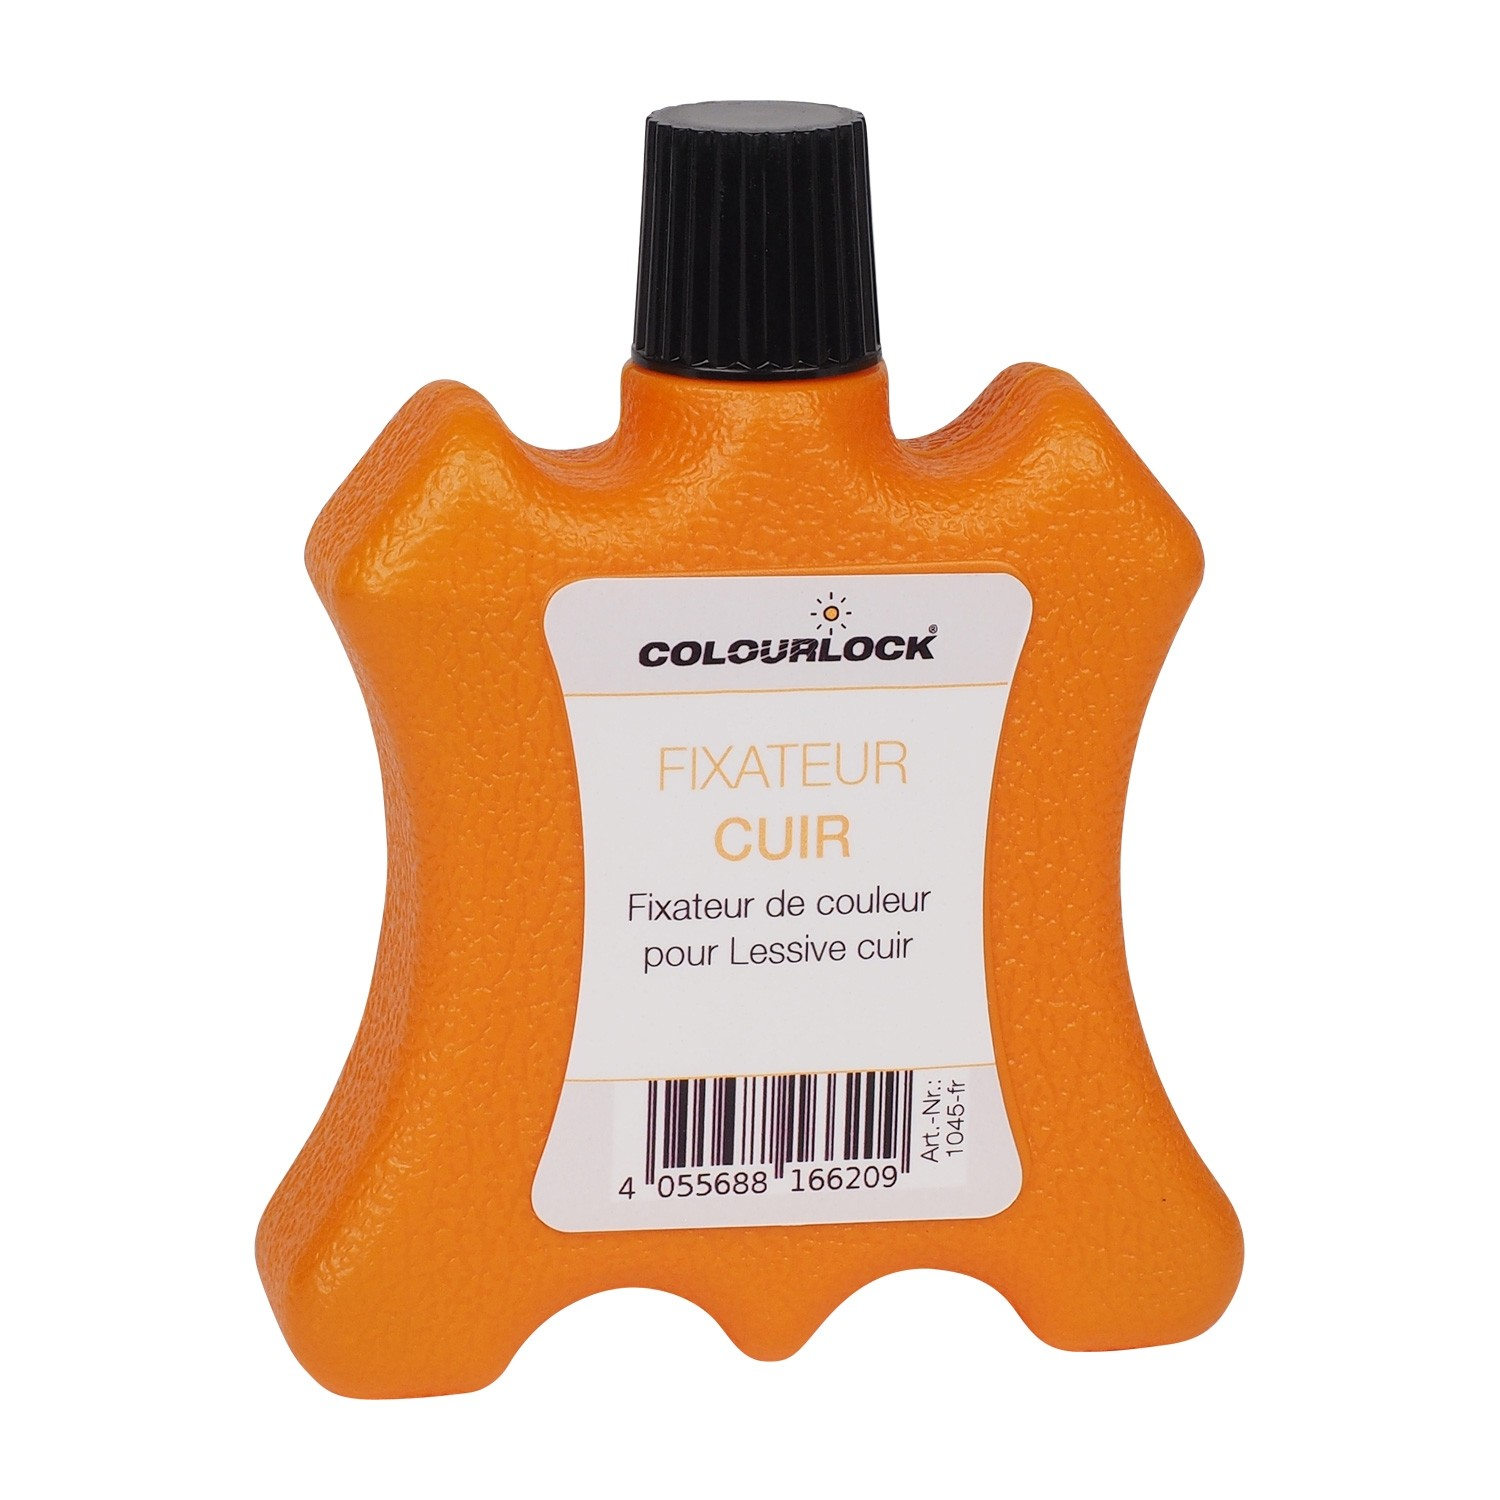 Fixateur cuir COLOURLOCK, 100 ml